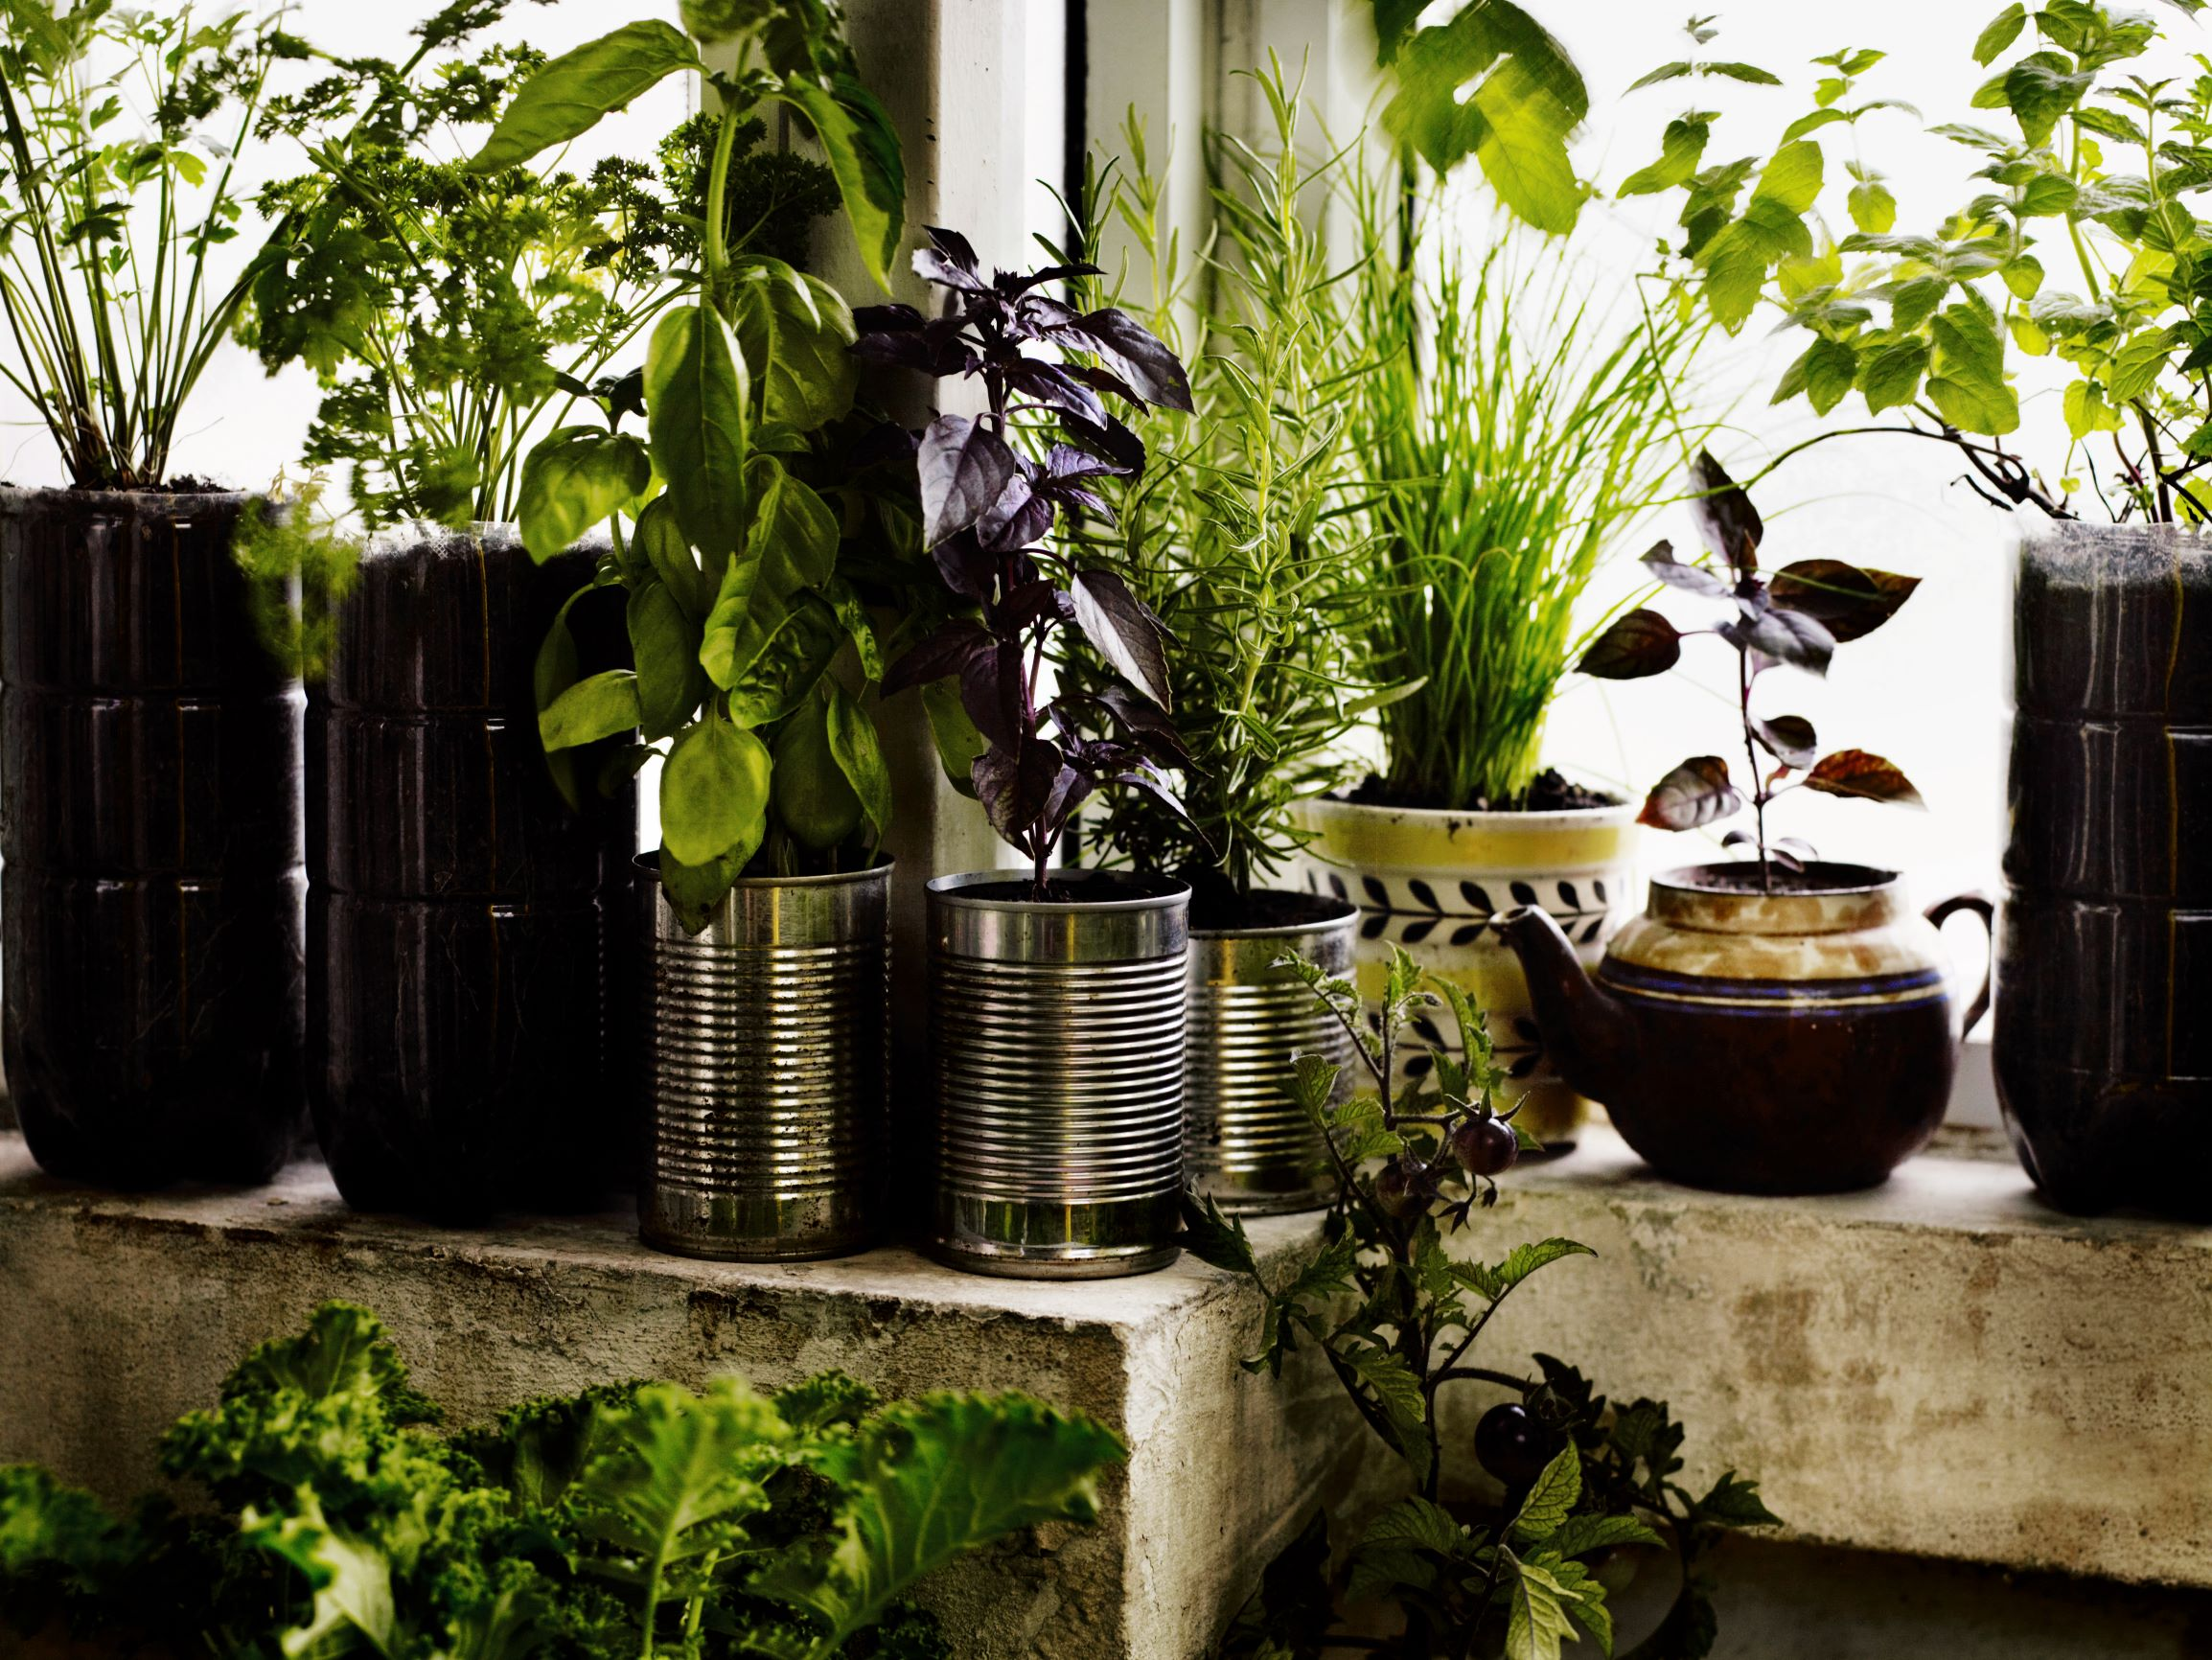 A small container herb garden. All pictures from Growing Fruit & Vegetables in Pots by Aaron Bertelsen